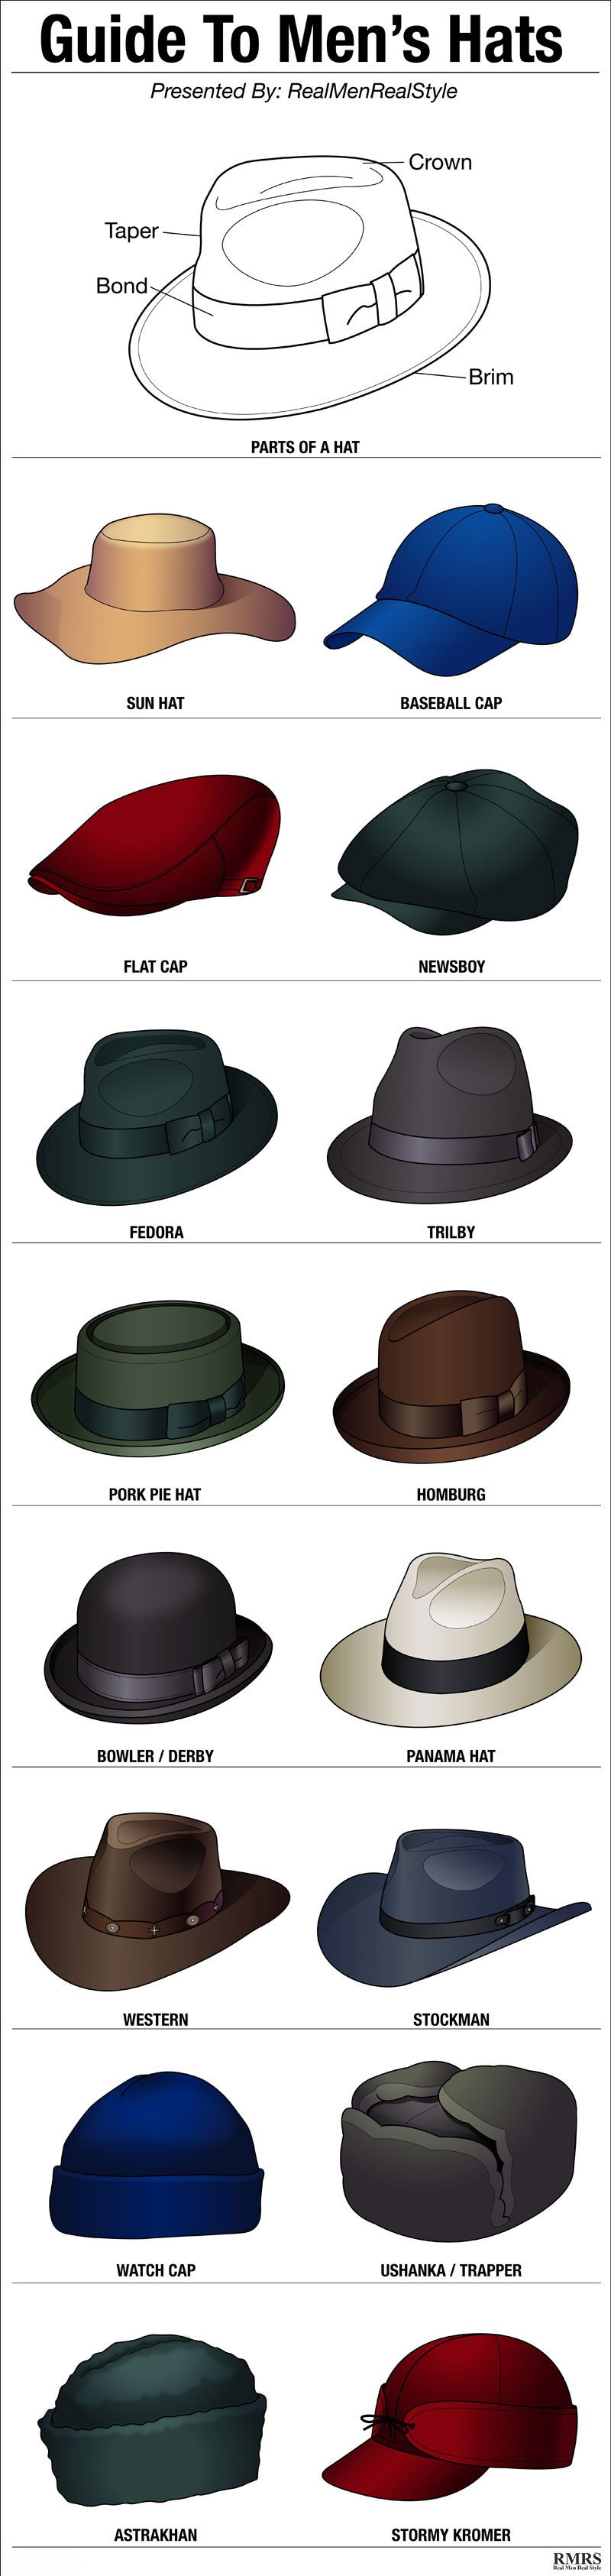 75dafb0dfd83d6 16 Stylish Men's Hats | Hat Style Guide | Man's Headwear Infographic